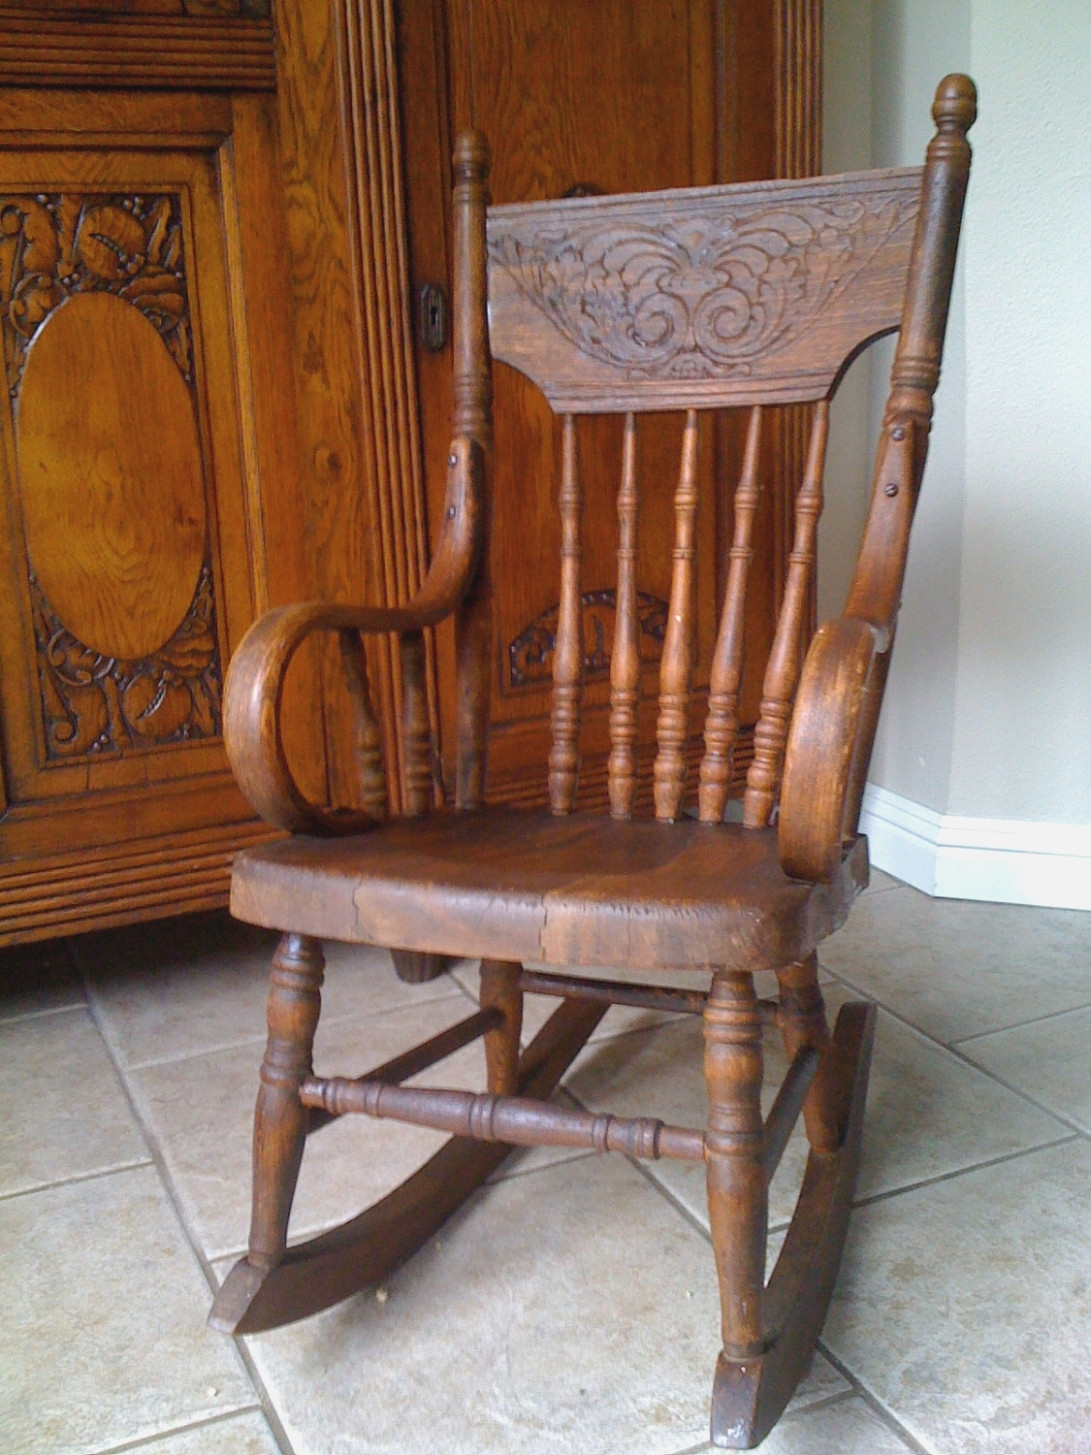 Elegant Old Fashioned Rocking Chair In Antique Child Furniture Within Old Fashioned Rocking Chairs (#6 of 15)